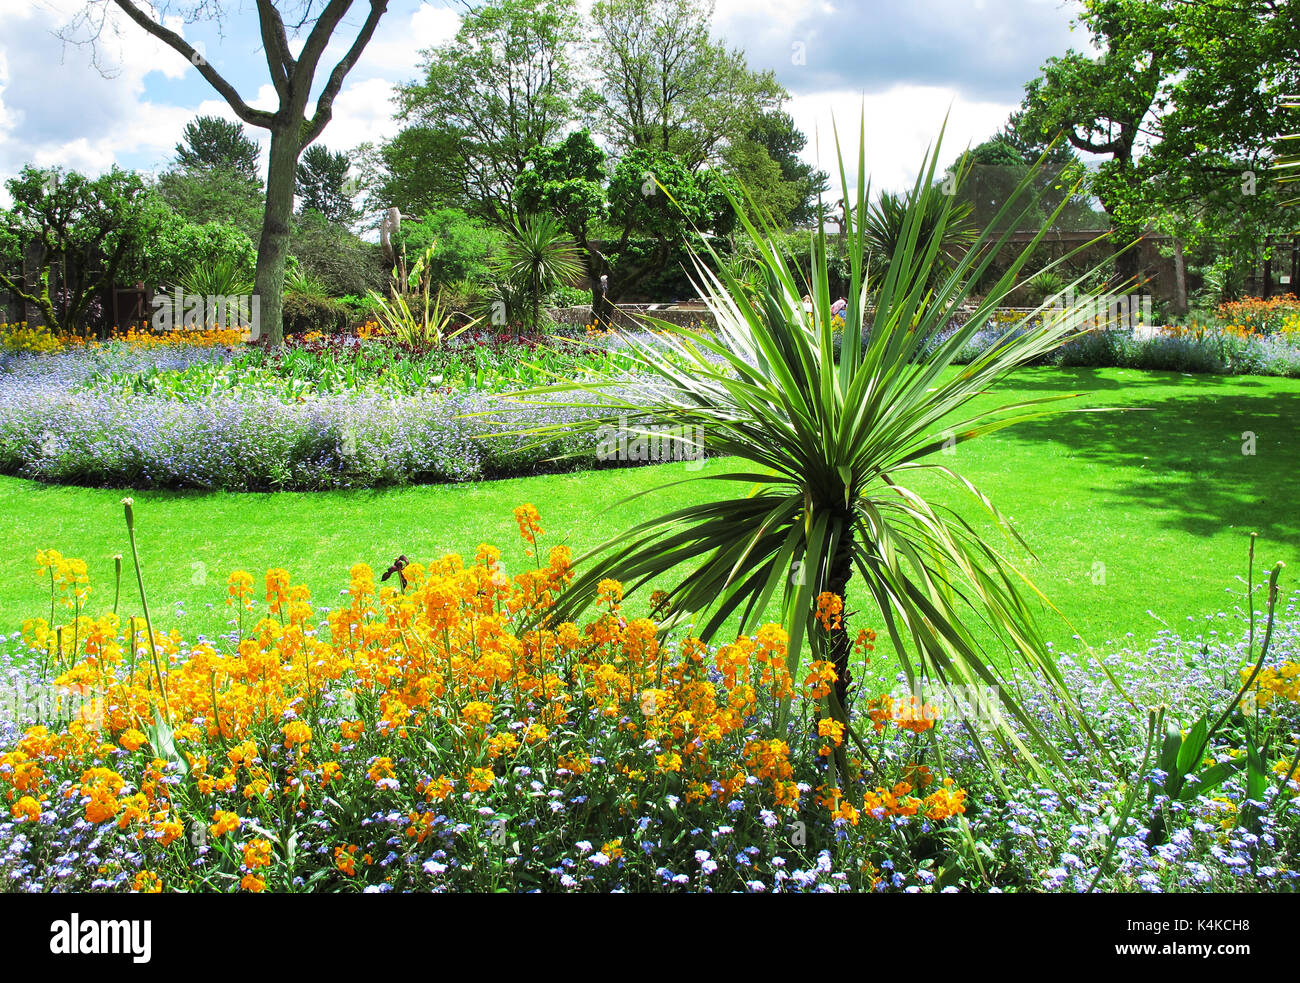 The Landscaped Gardens At Cotswold Wildlife Park Near Burford, Oxfordshire.    Stock Image